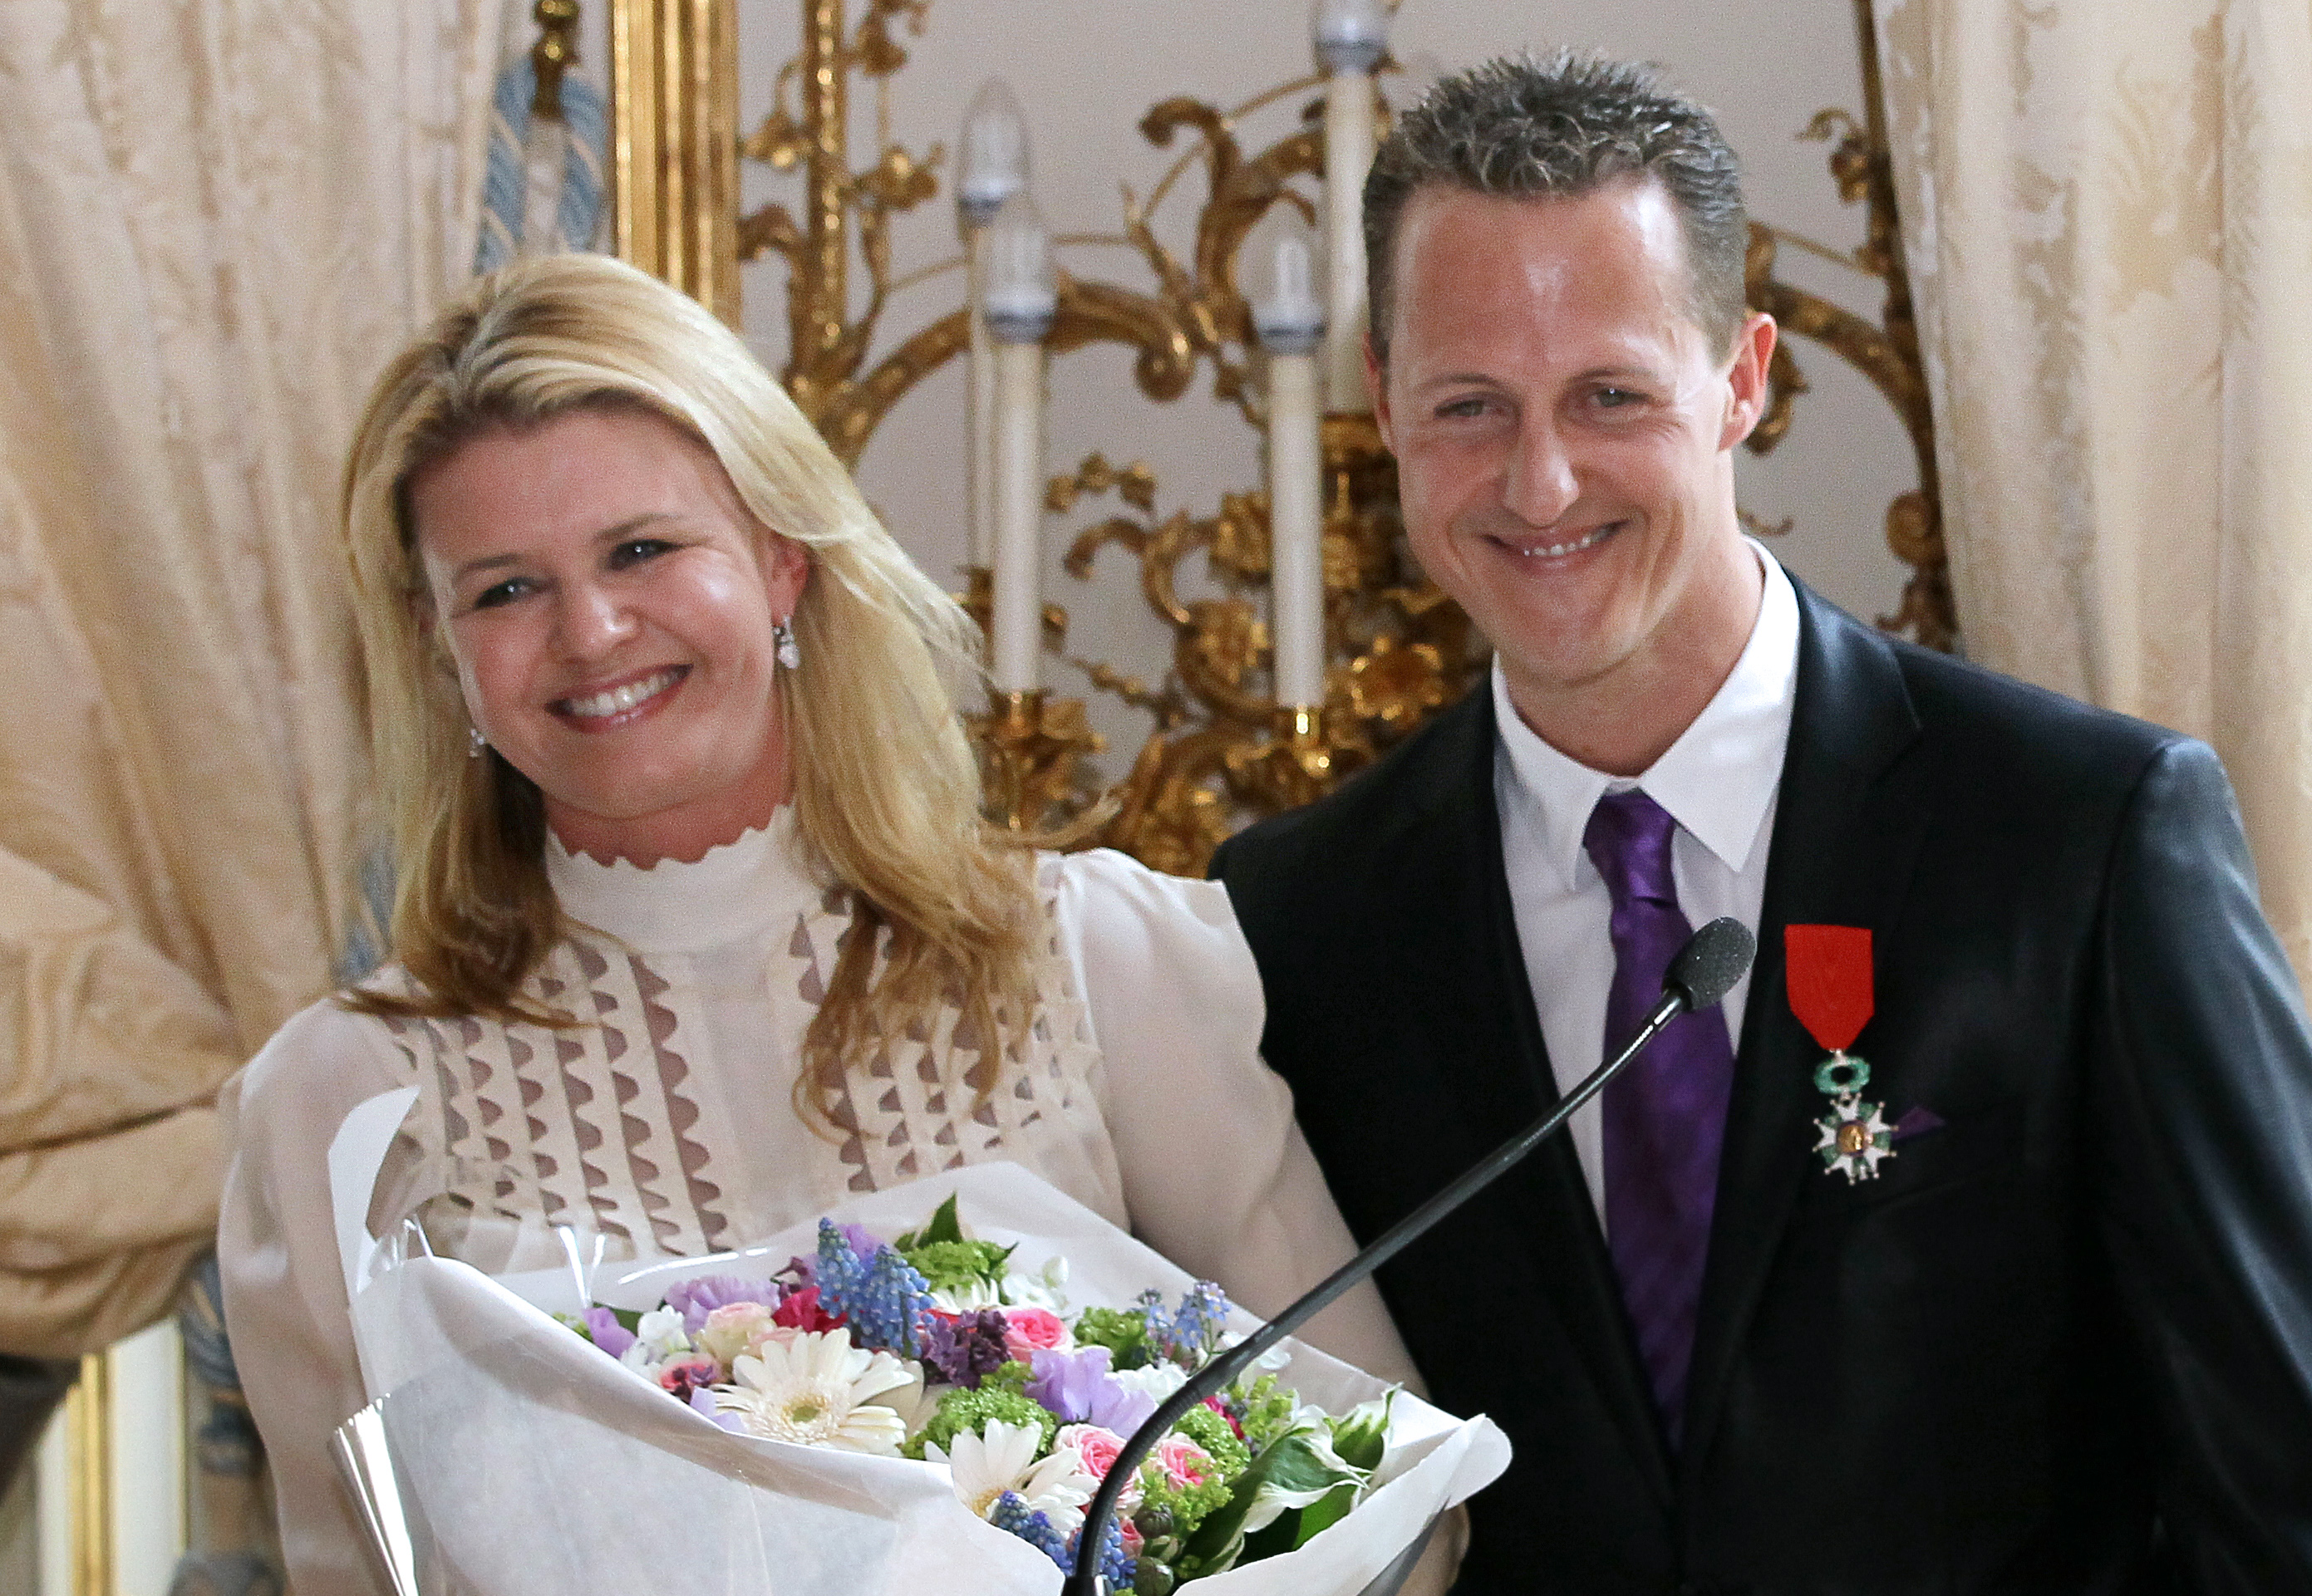 German Formula 1 pilot, Michael Schumacher poses with his wife Corinna after he was awarded with the French Legion of Honor by French Prime Minister Francois Fillon on April 29, 2010 at the Hotel Matignon in Paris. AFP PHOTO THOMAS COEX        (Photo credit should read THOMAS COEX/AFP/GettyImages)